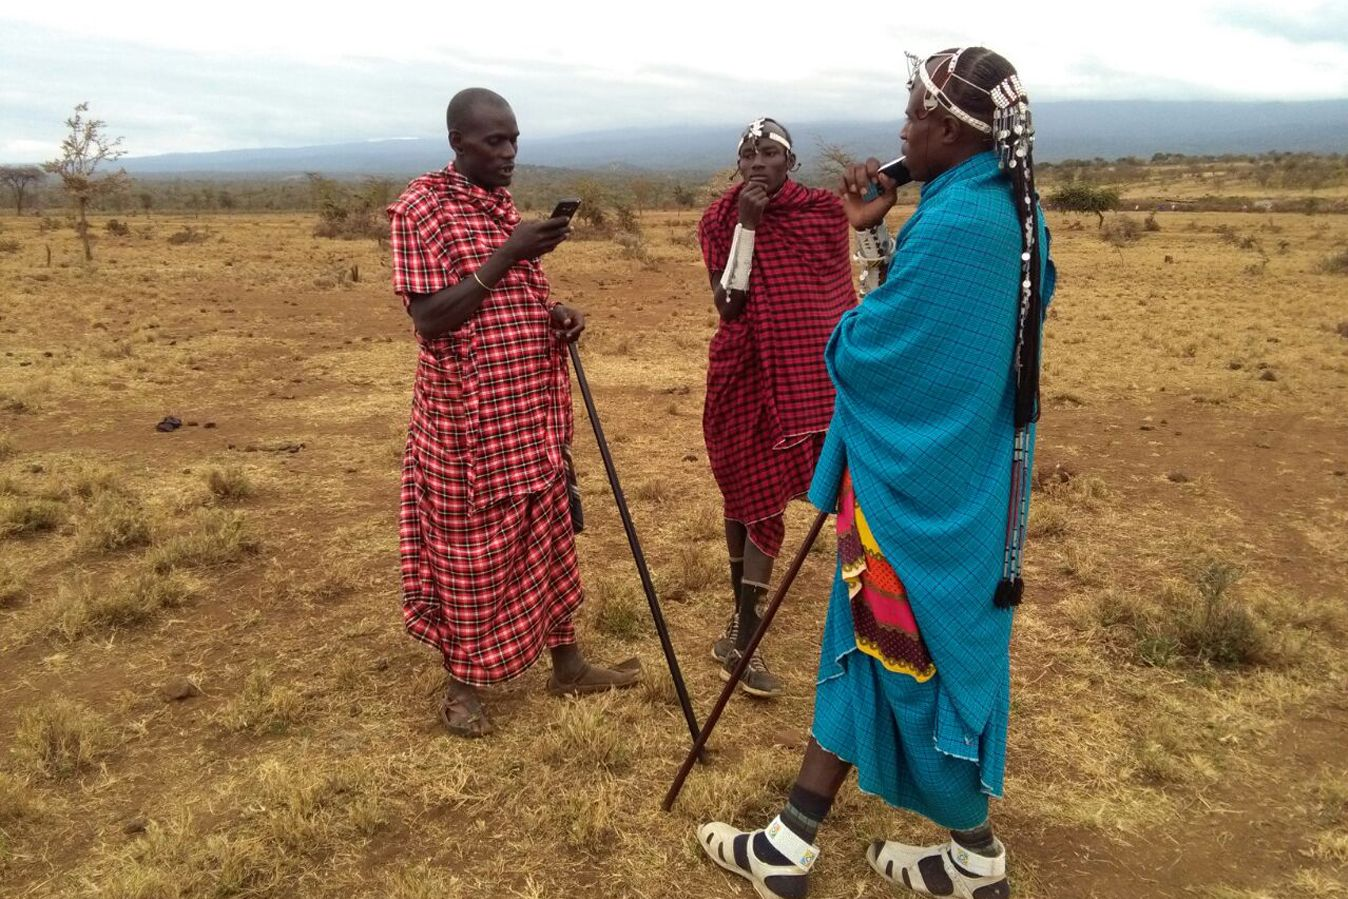 Warriors for Wildlife talk to community members in northern Tanzania about big cat conservation